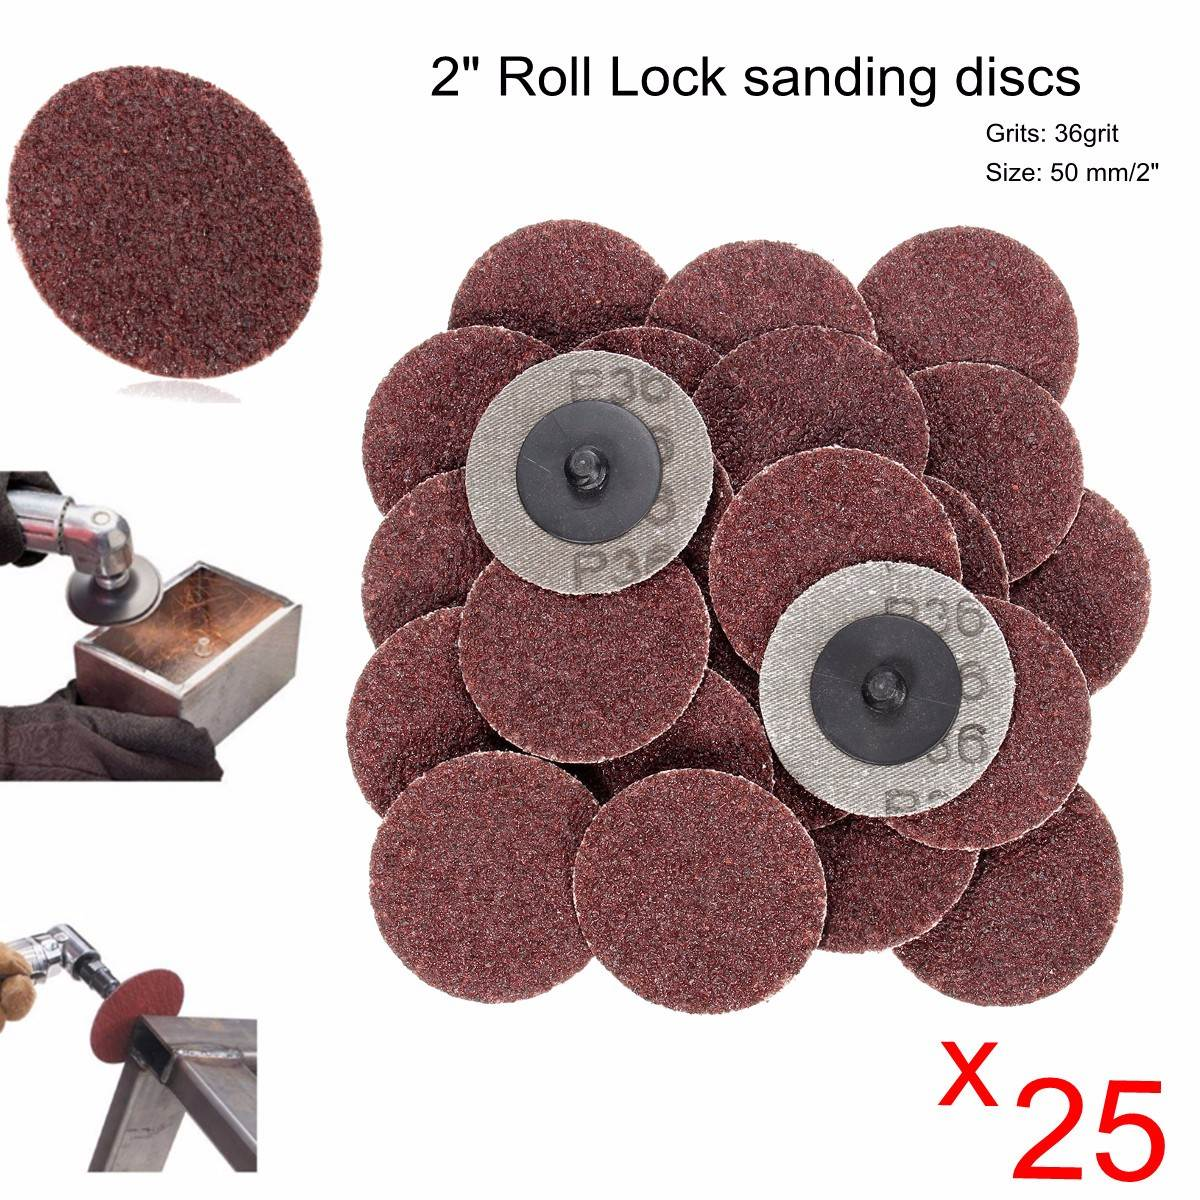 60 Pcs 100 To 2000 Grits Roll Lock Sanding Disc Abrasive Round Pads Mandrel Set